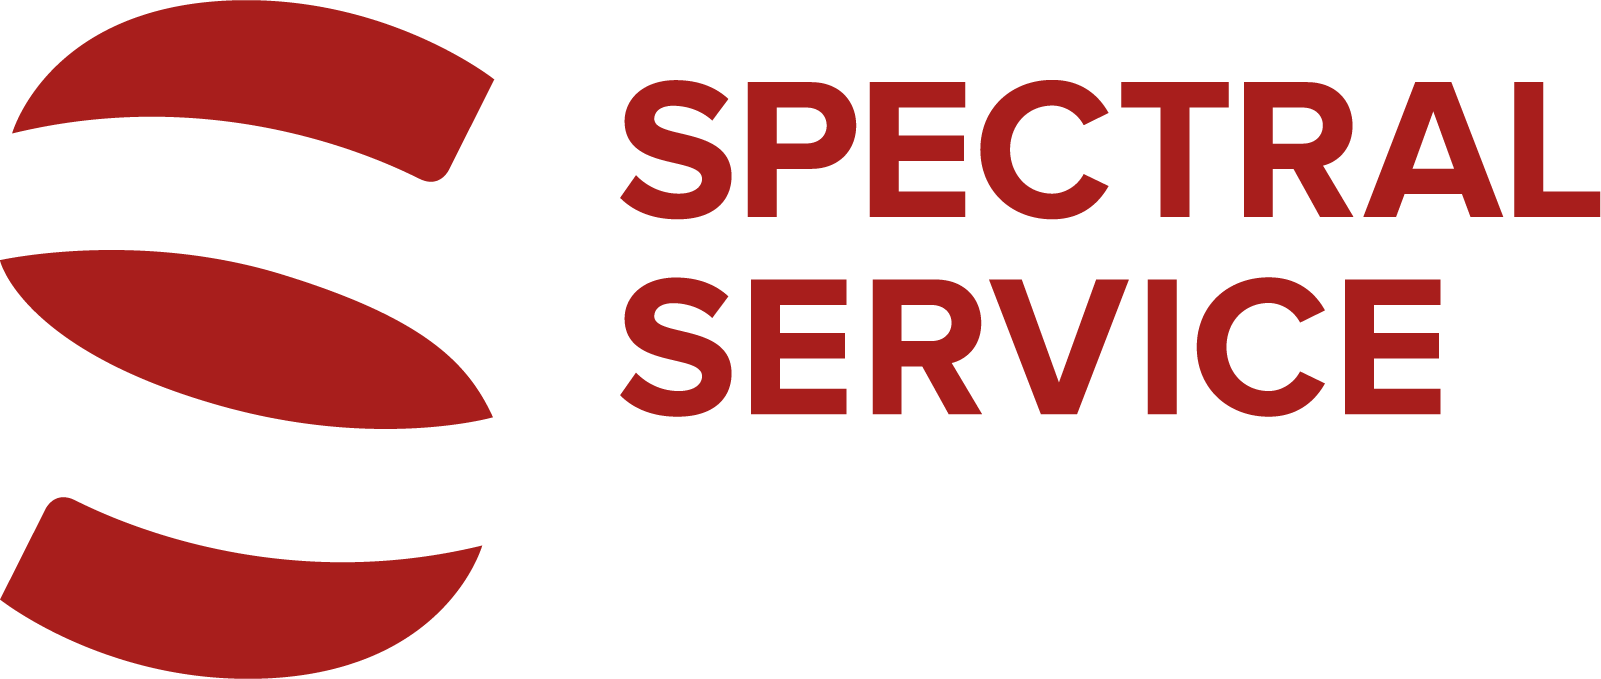 Spectral Service